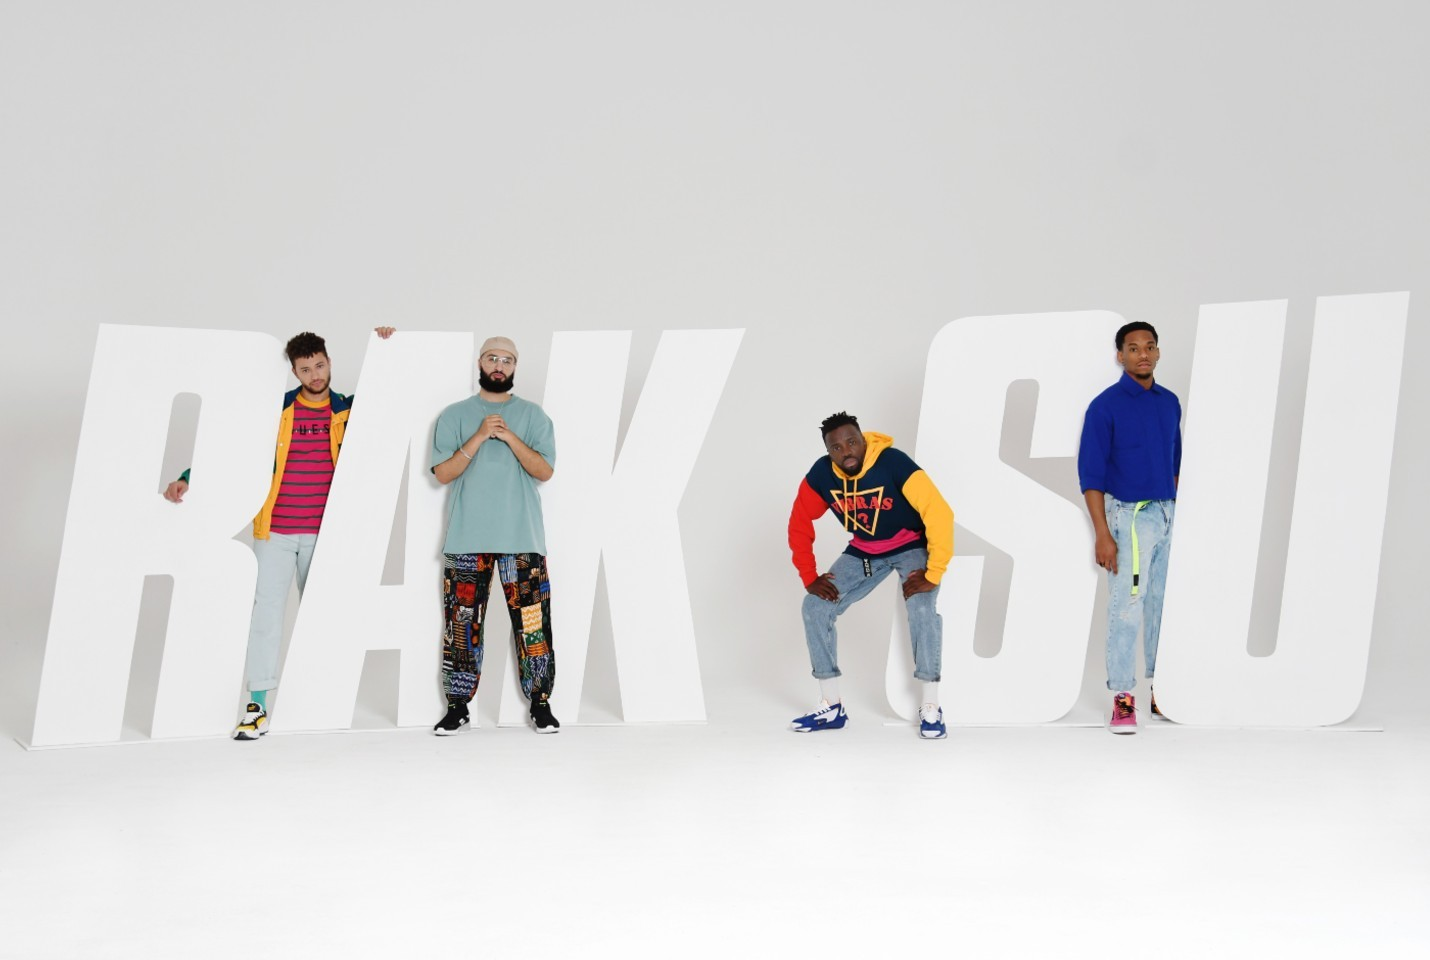 Win Tickets to see Rak-Su in Glasgow